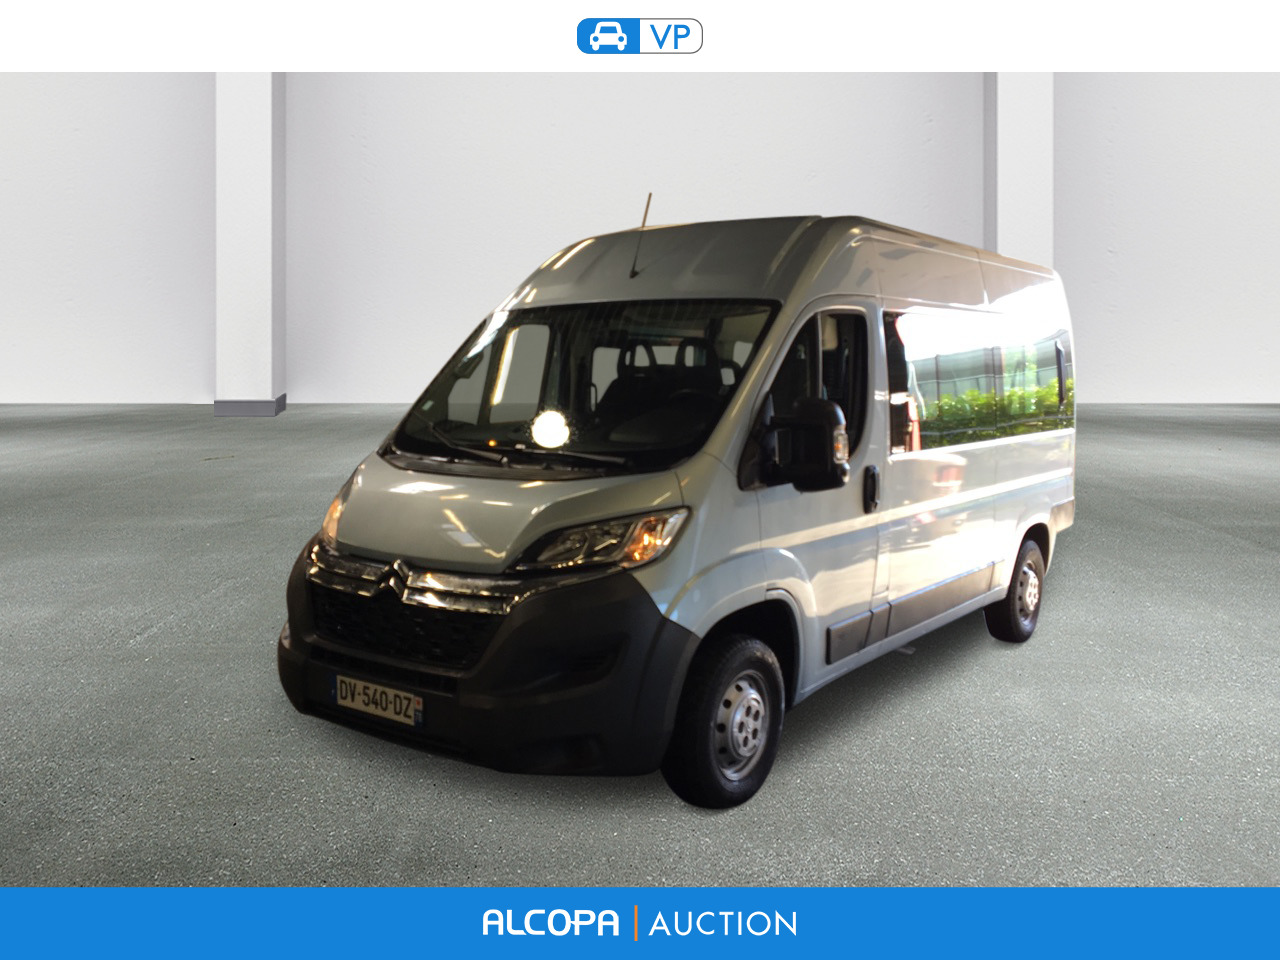 citroen jumper jumper 33 l2h2 e hdi 130 combi attraction alcopa auction. Black Bedroom Furniture Sets. Home Design Ideas